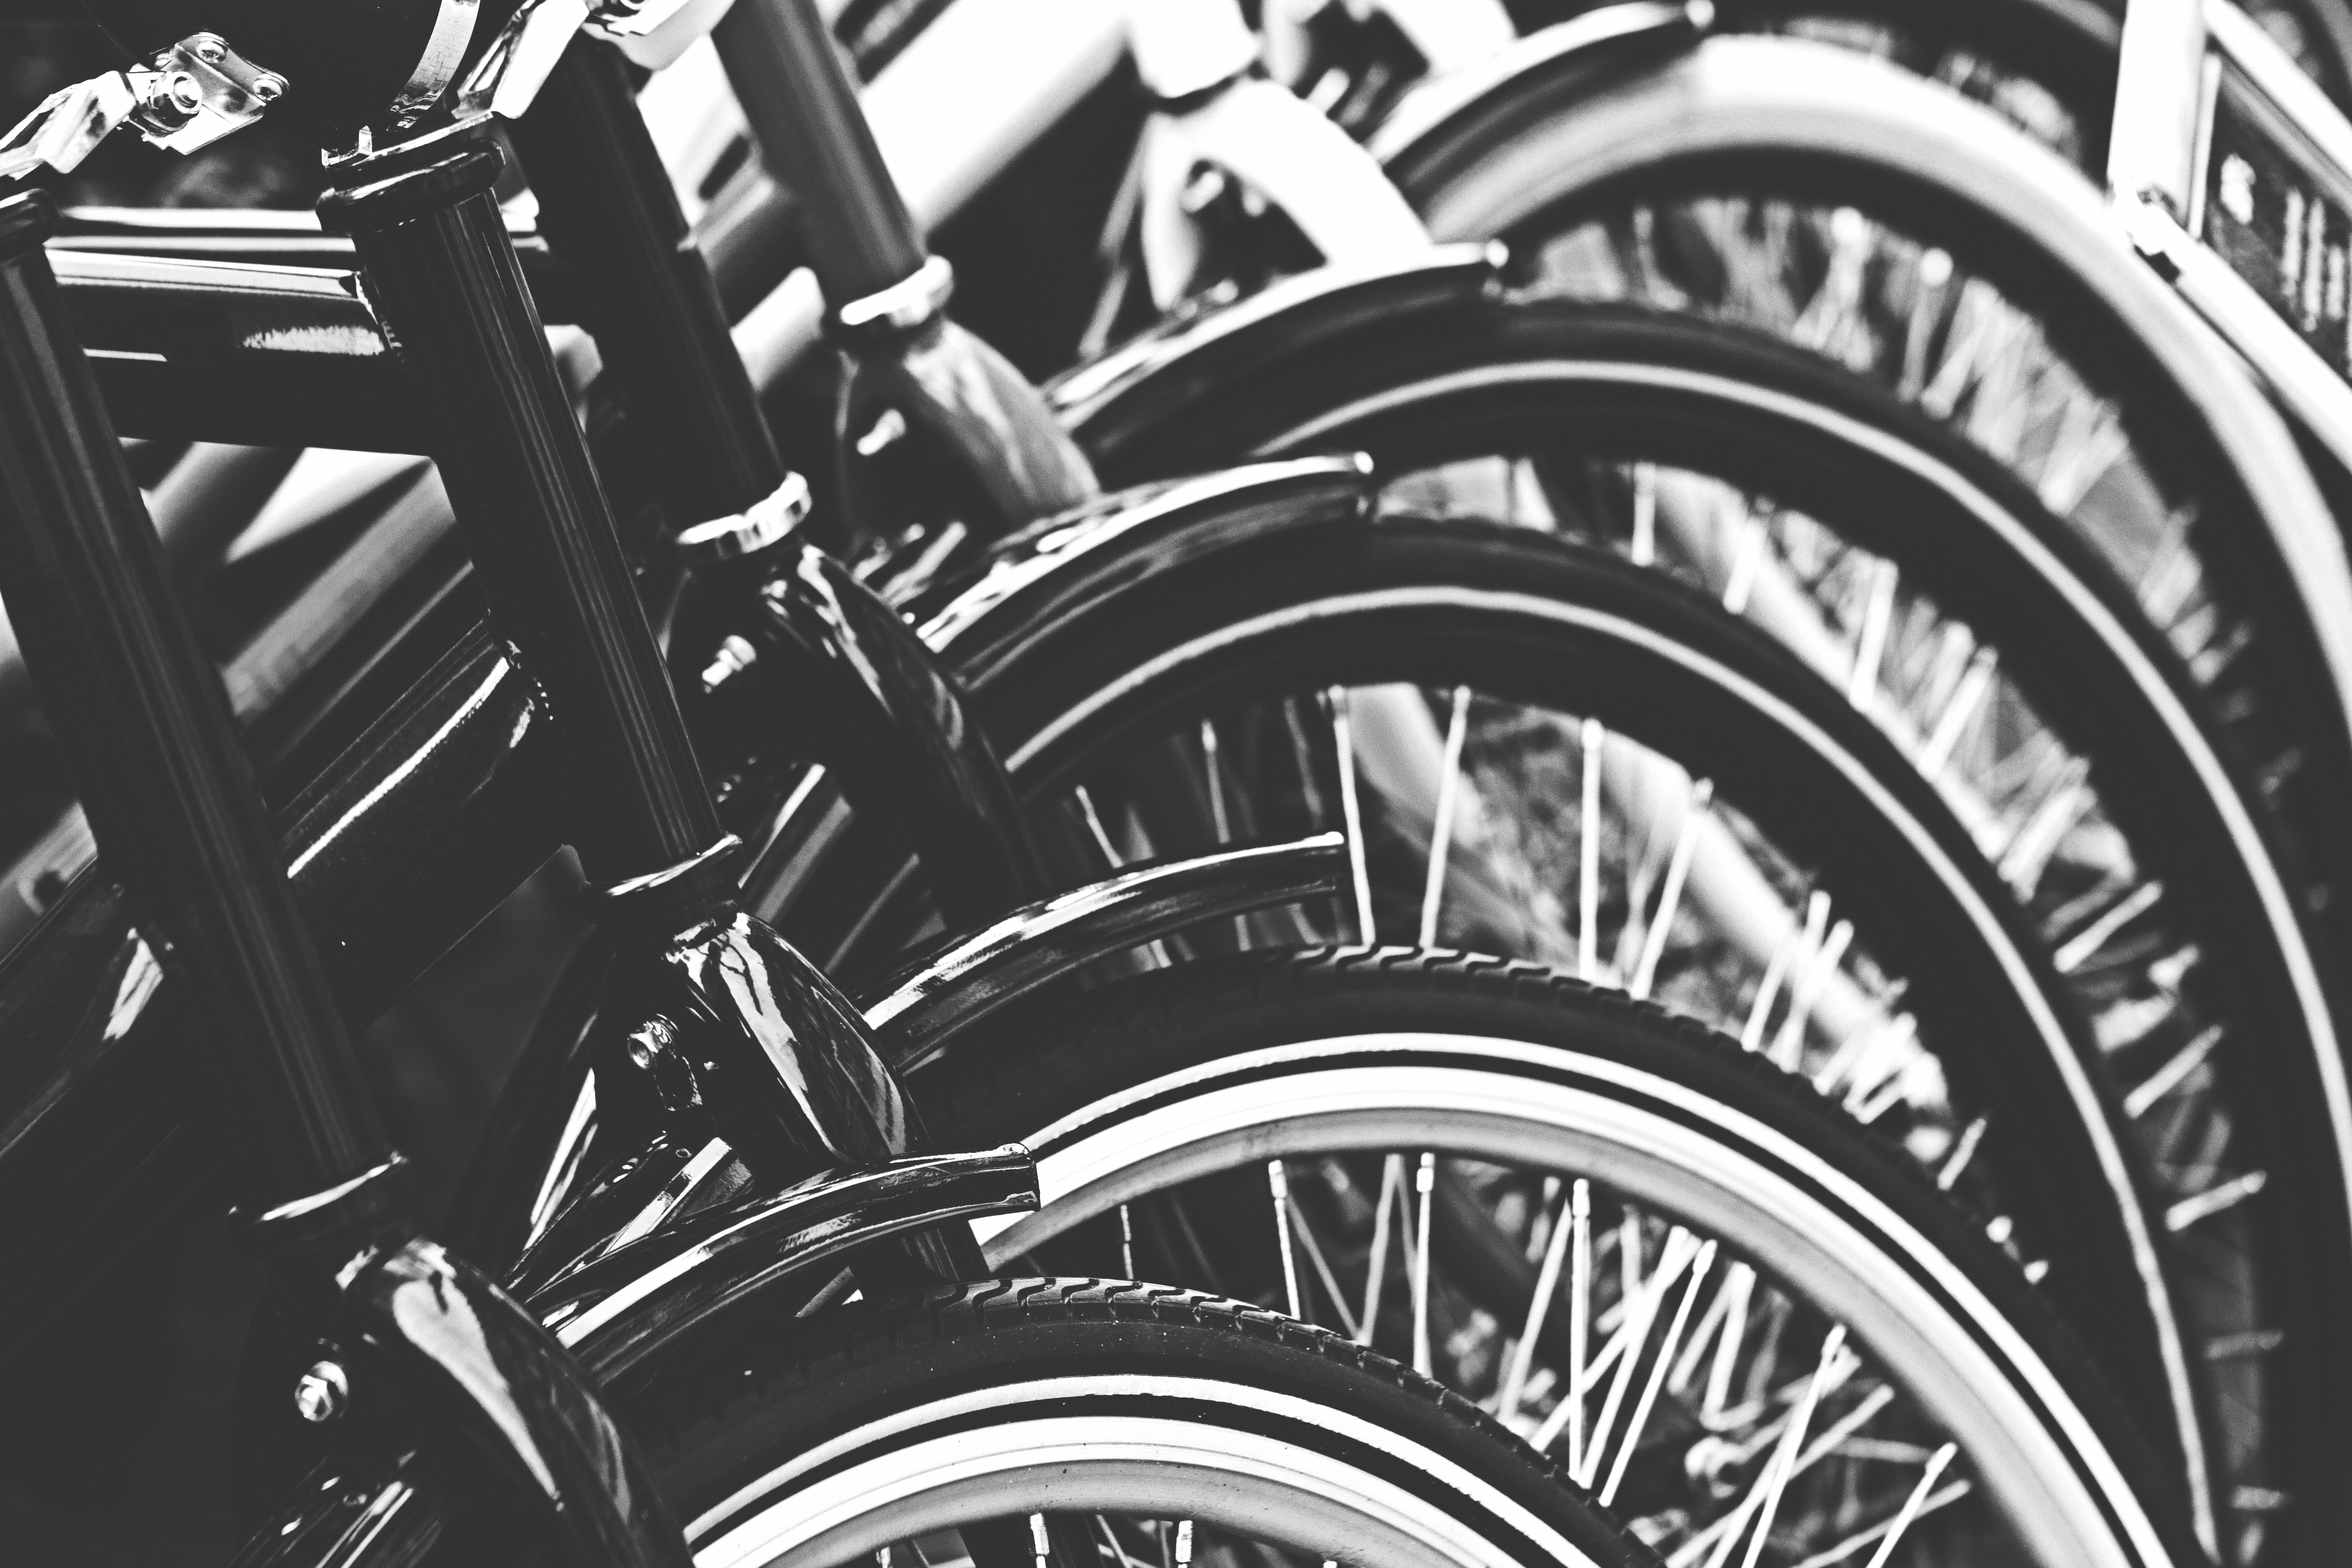 Grayscale Photography Of Bicycle Free Stock Photo